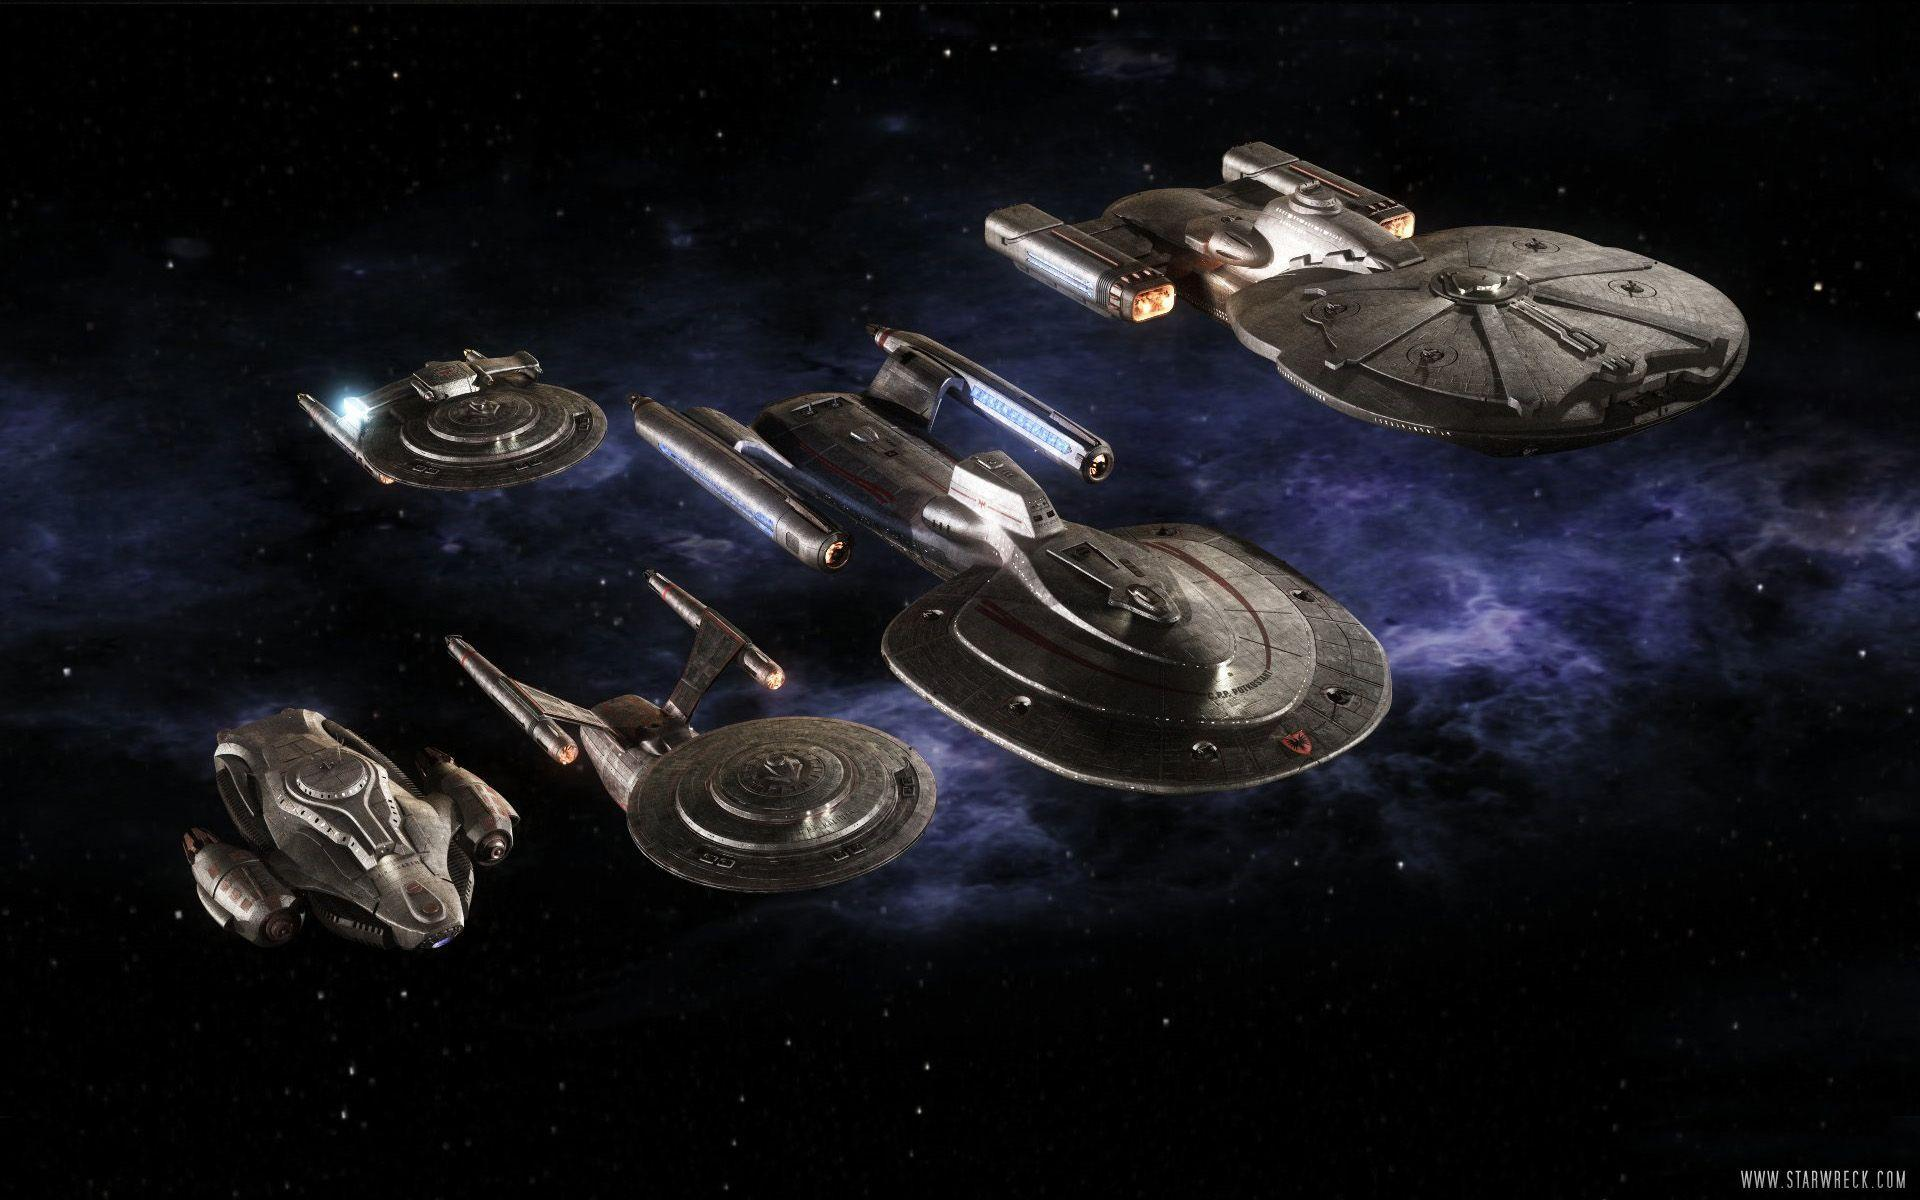 Star Trek Ships Wallpapers - Wallpaper Cave